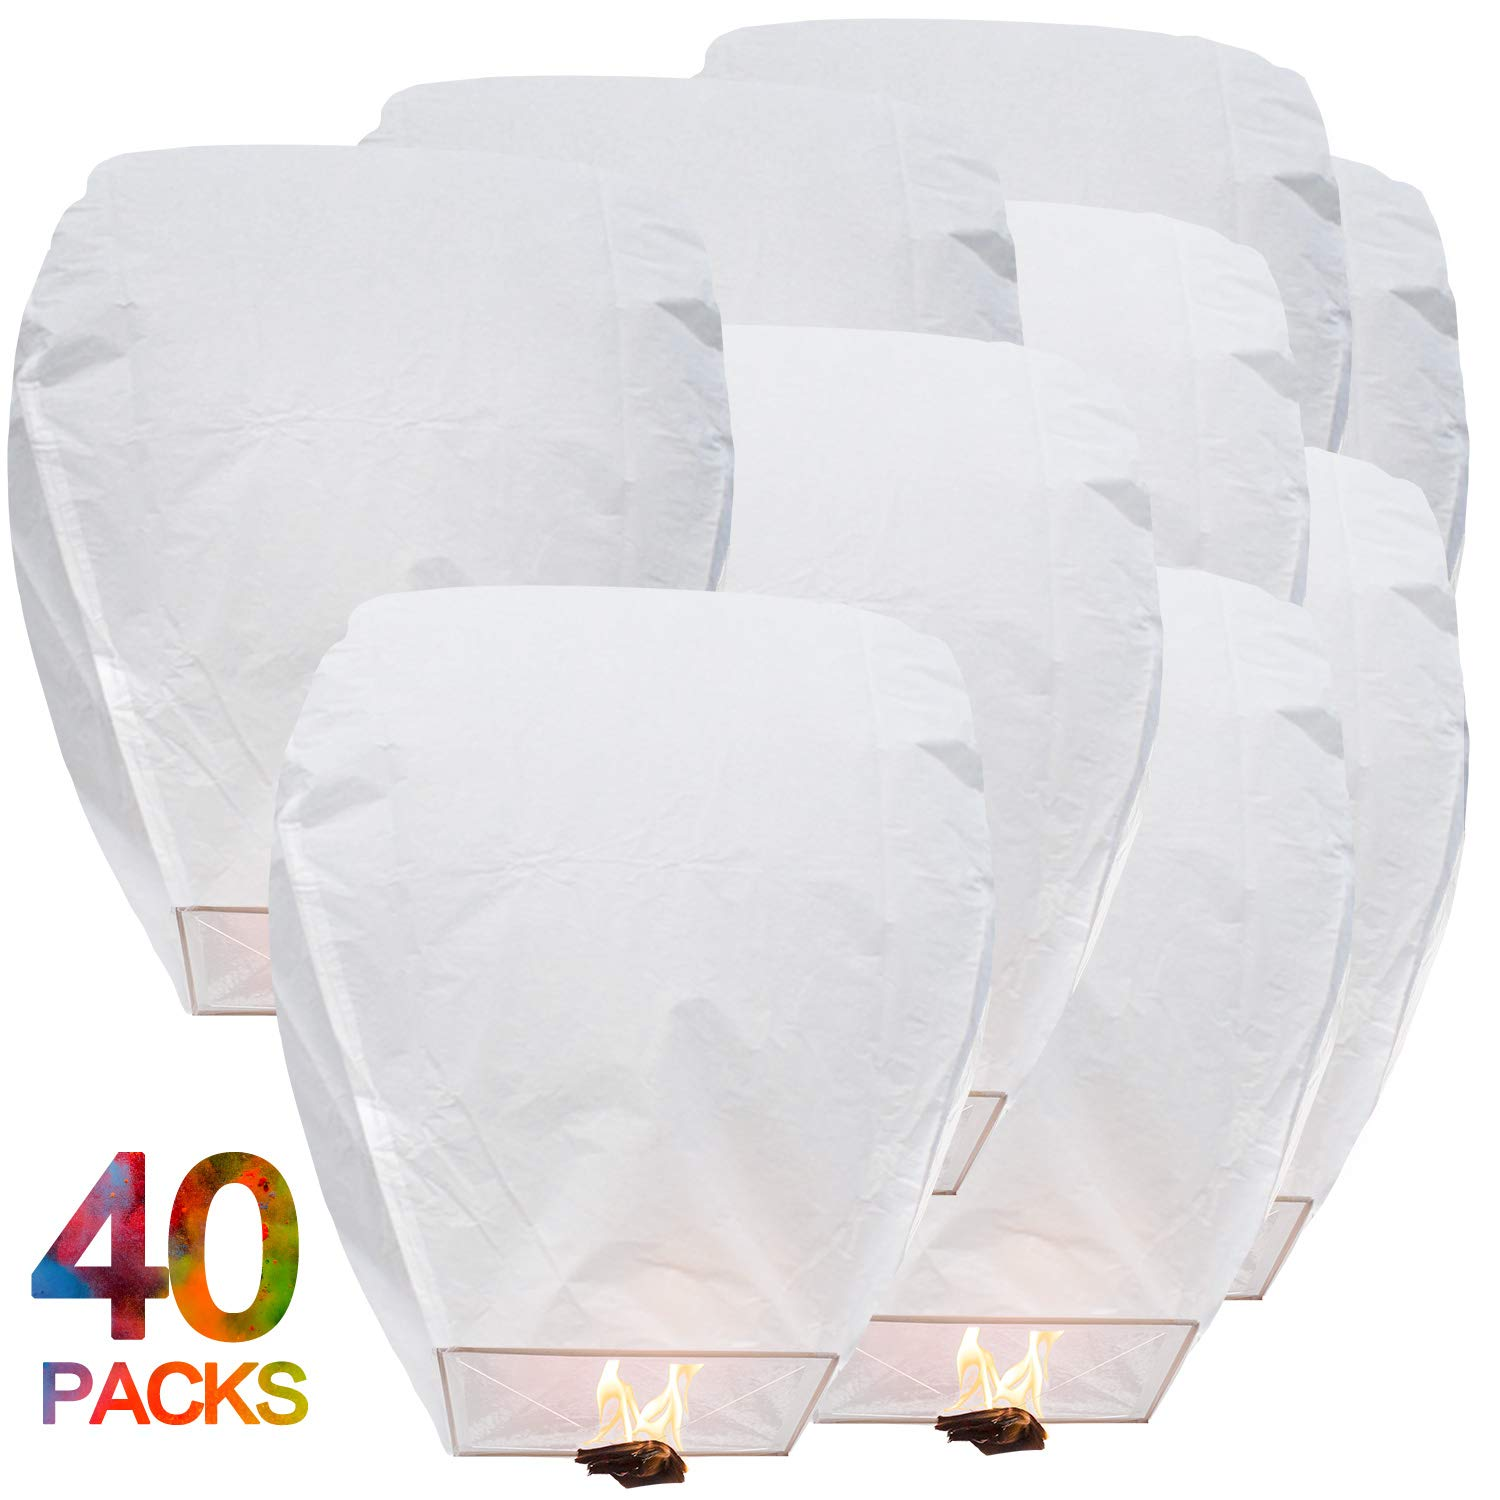 BATTIFE Sky Lanterns Chinese Flying Lanterns Paper Biodegradable Full Assembled 40 Pack White for Party Holiday Memorial Day to Release in Sky by BATTIFE